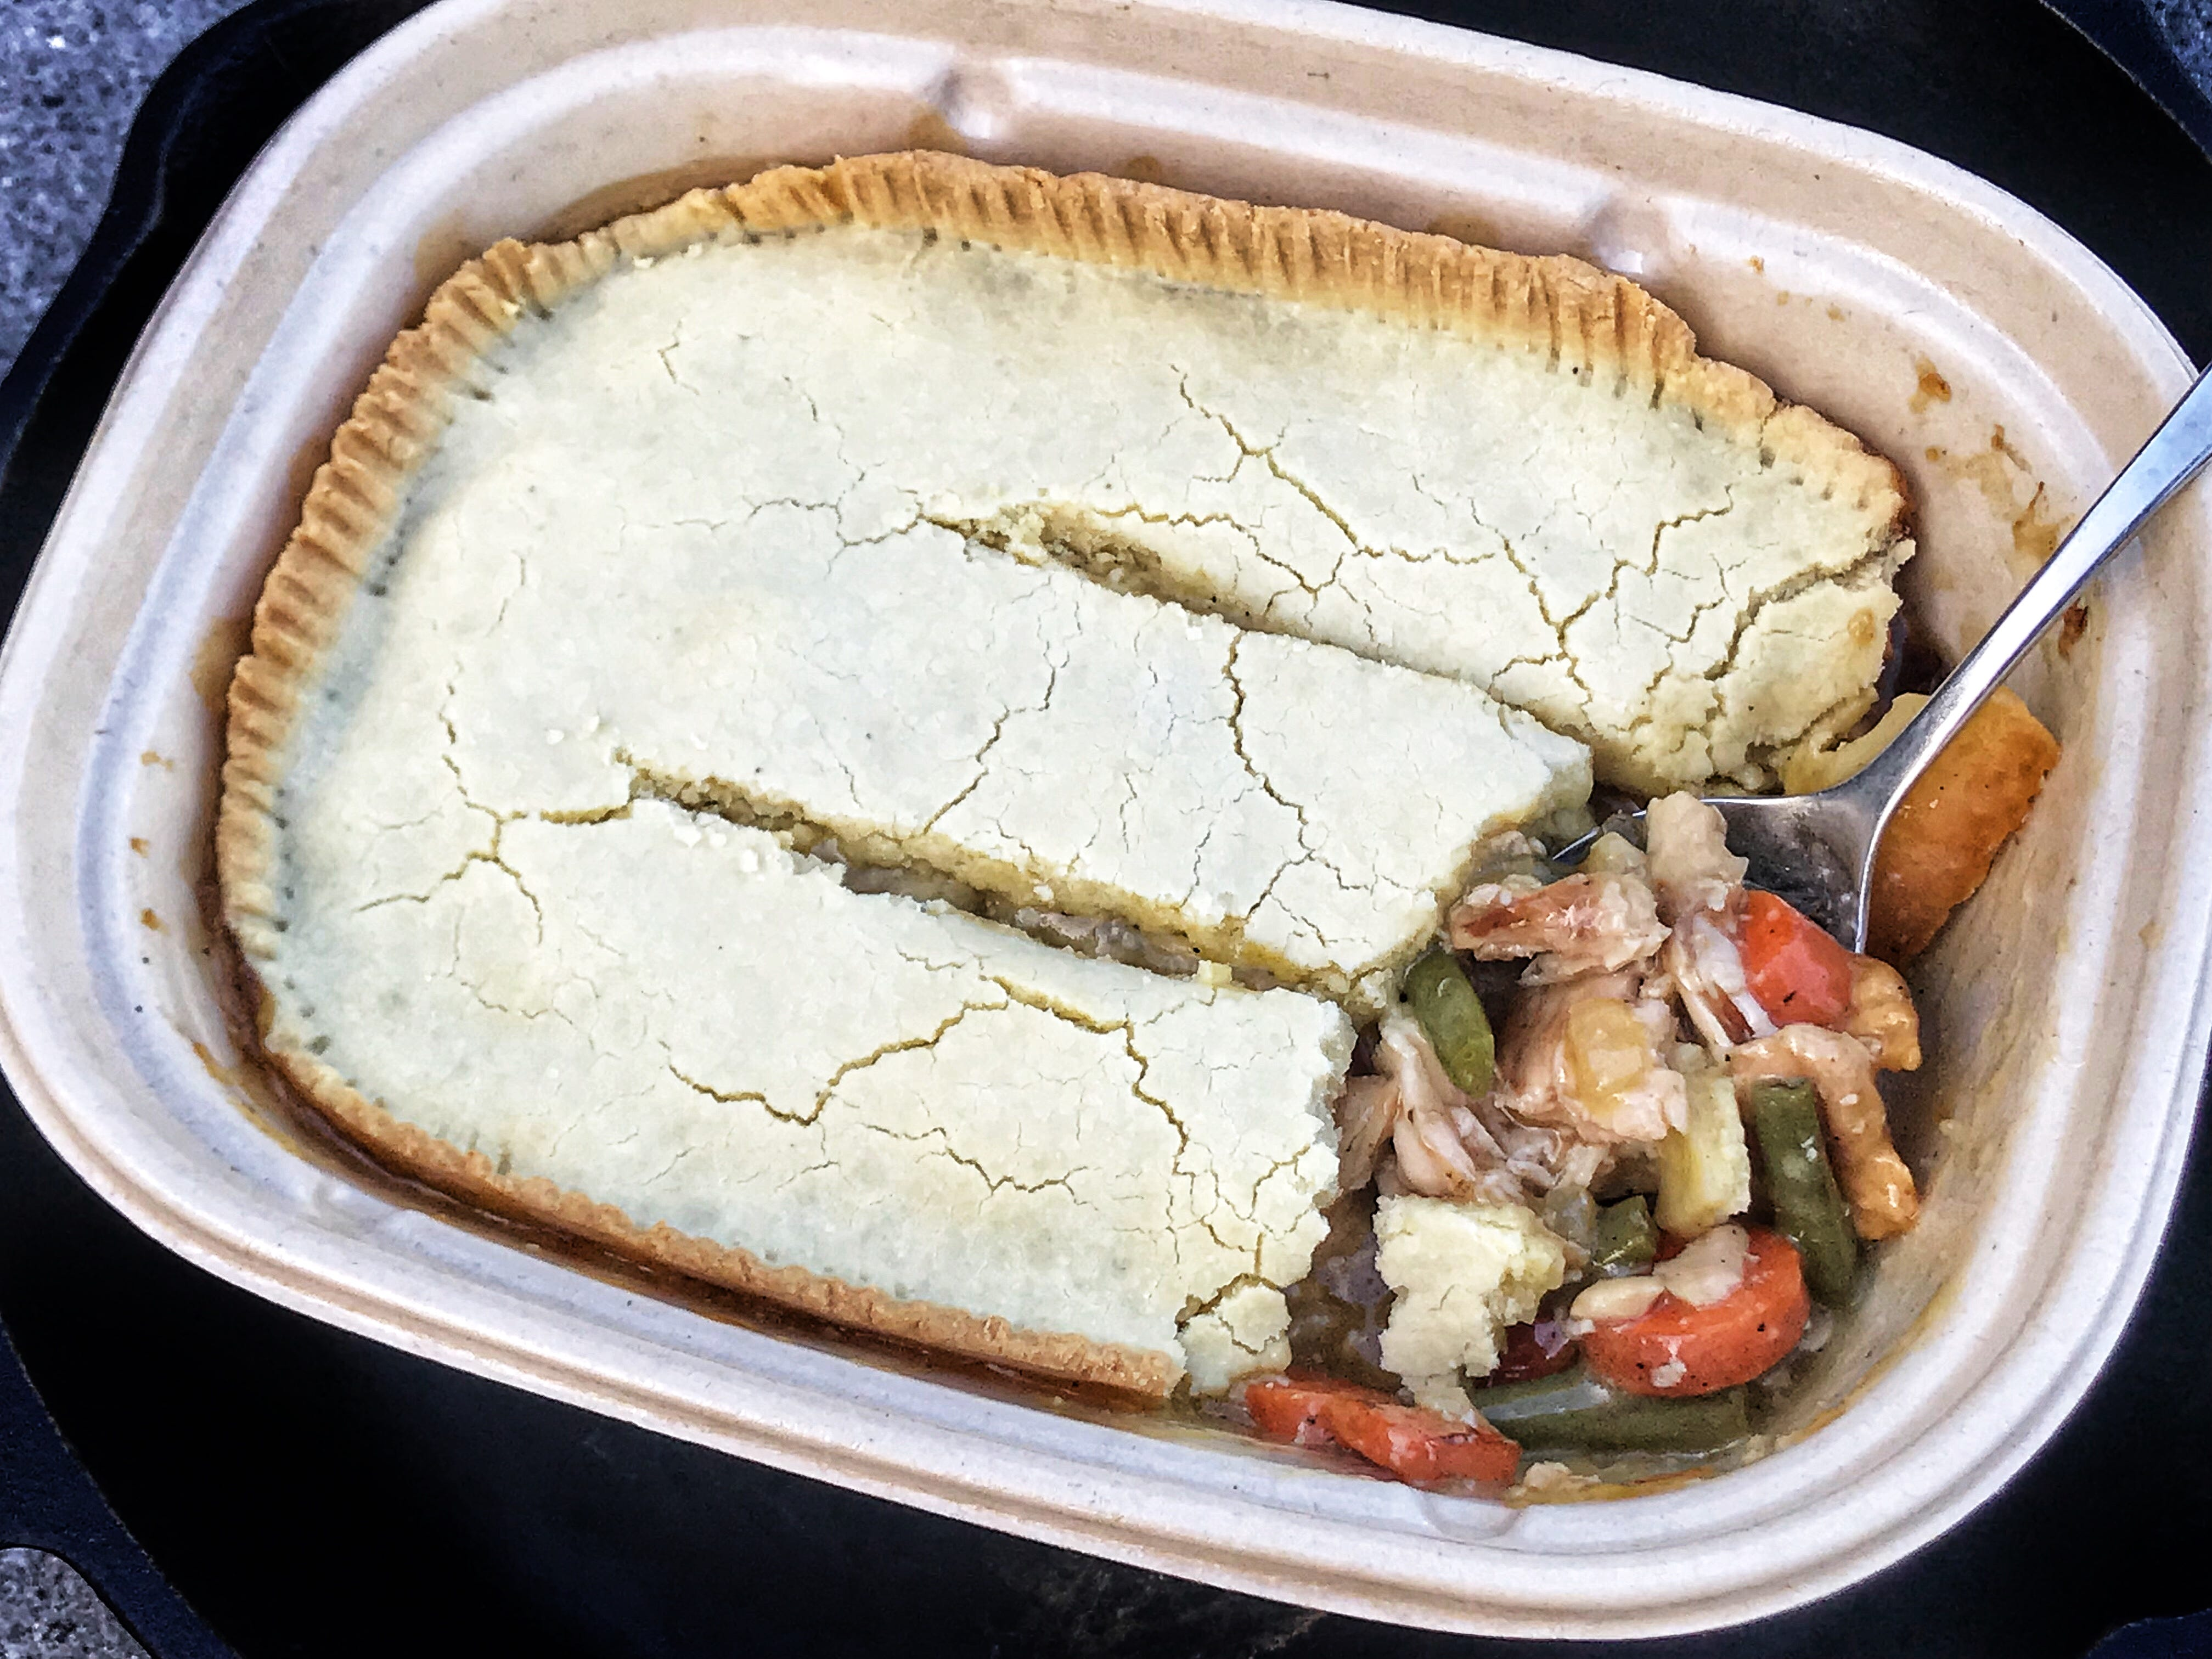 Fittest Kitchen has launched a meal prep service, which includes menu items like the chicken pot pie with handmade Fittest Kitchen pie crust.